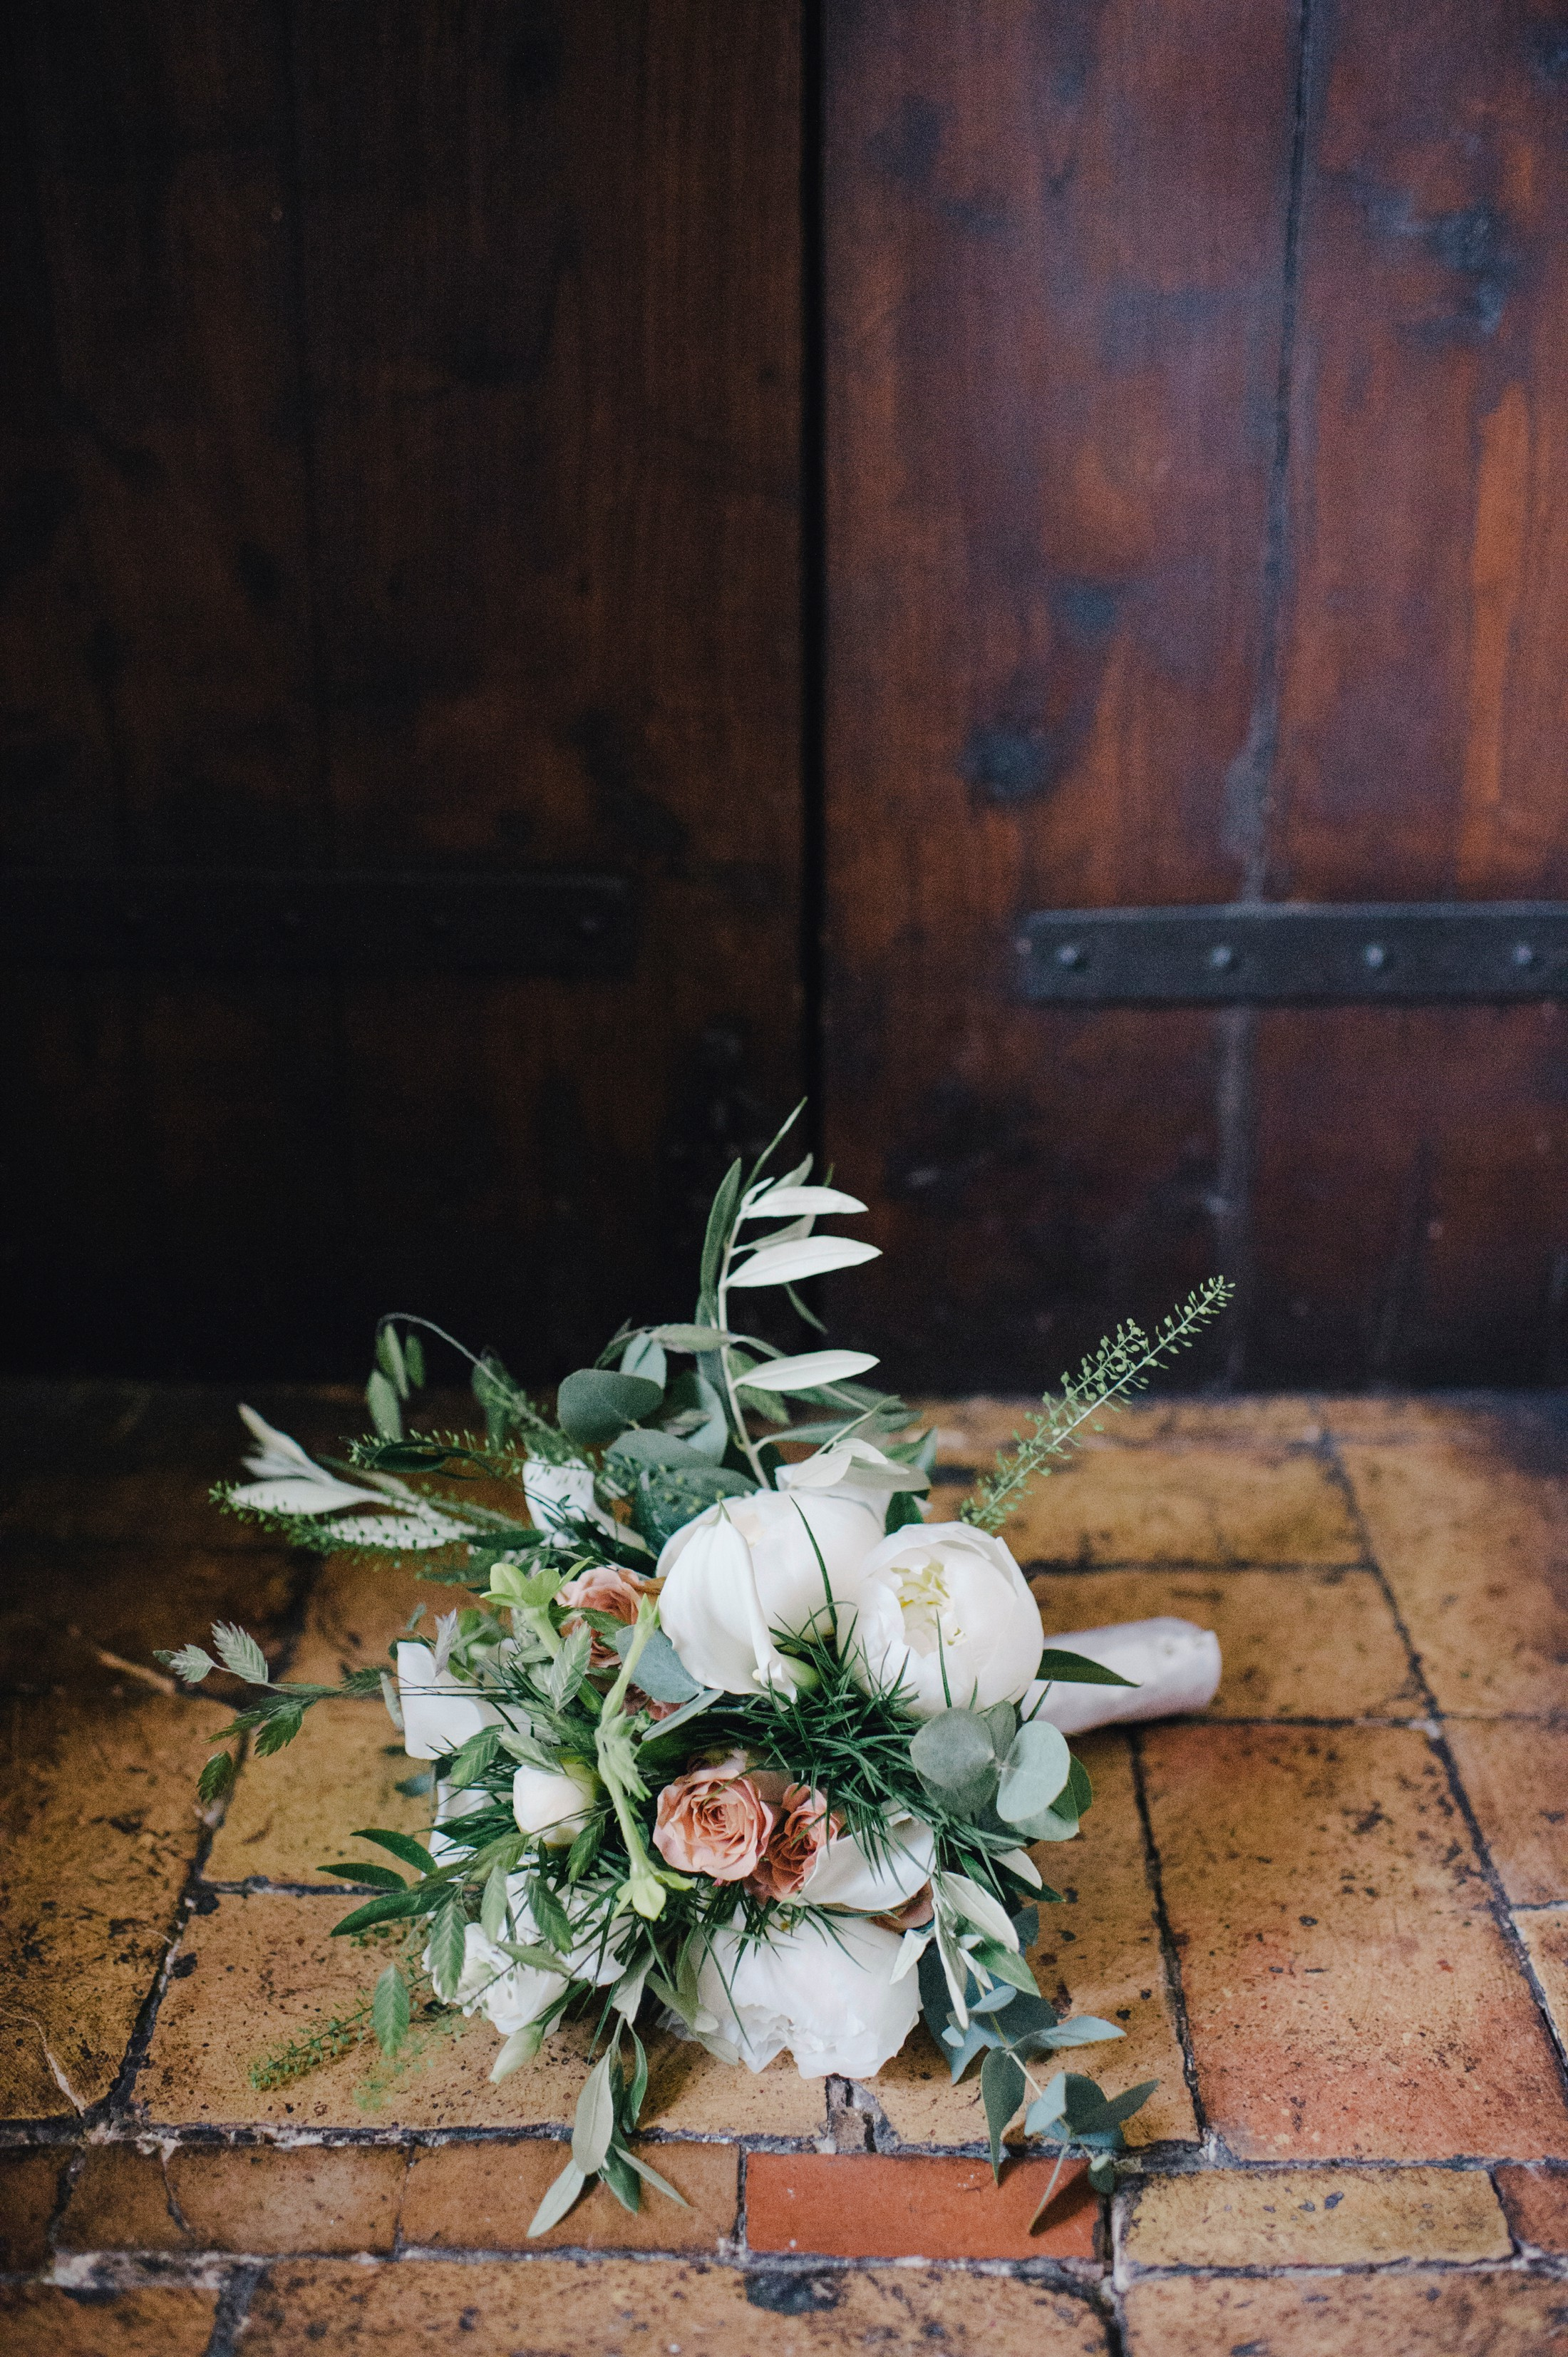 wedding bouquet on the floor